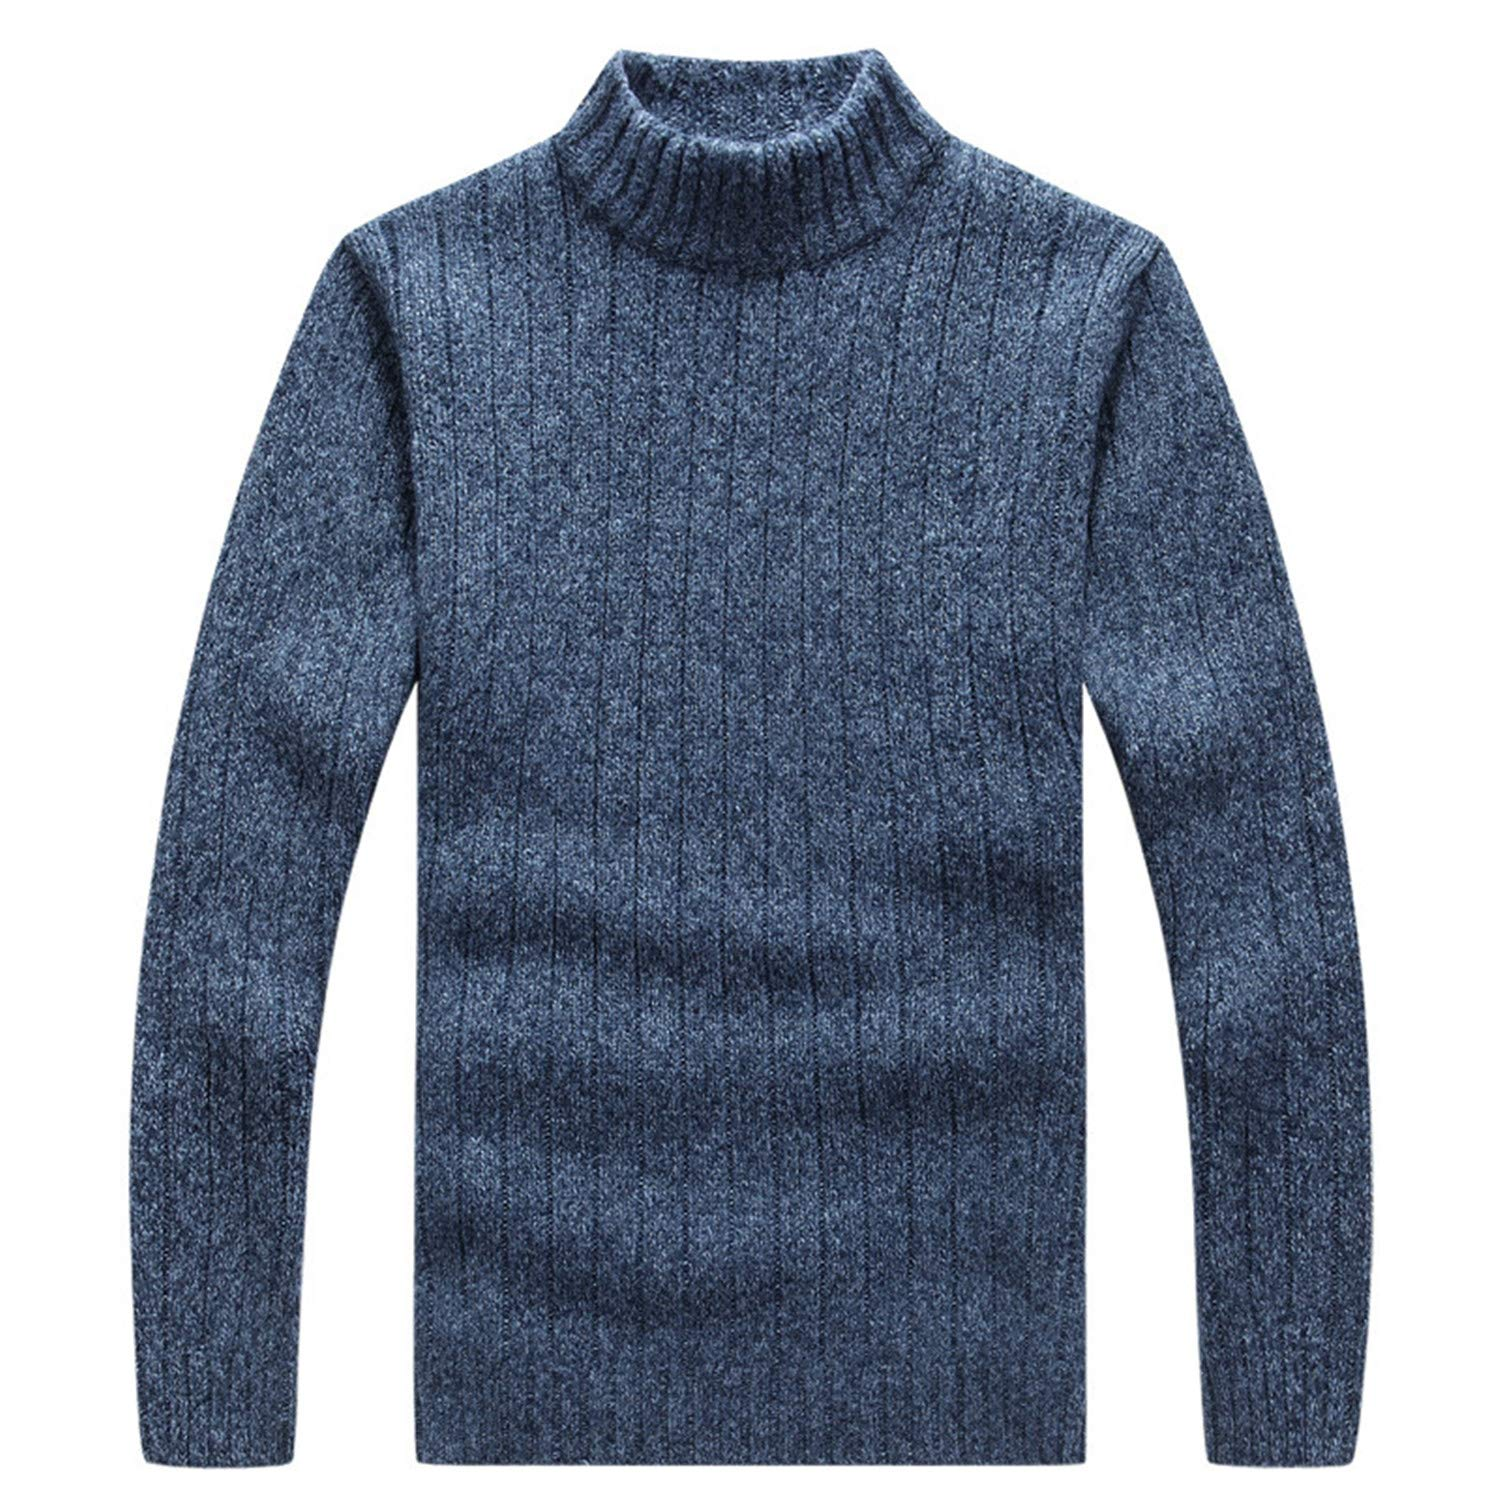 Thadensama Mens Pullovers Sweaters Autumn and Winter Slim Turtleneck for Man Classic Wool Turtleneck Knitwear Clothes